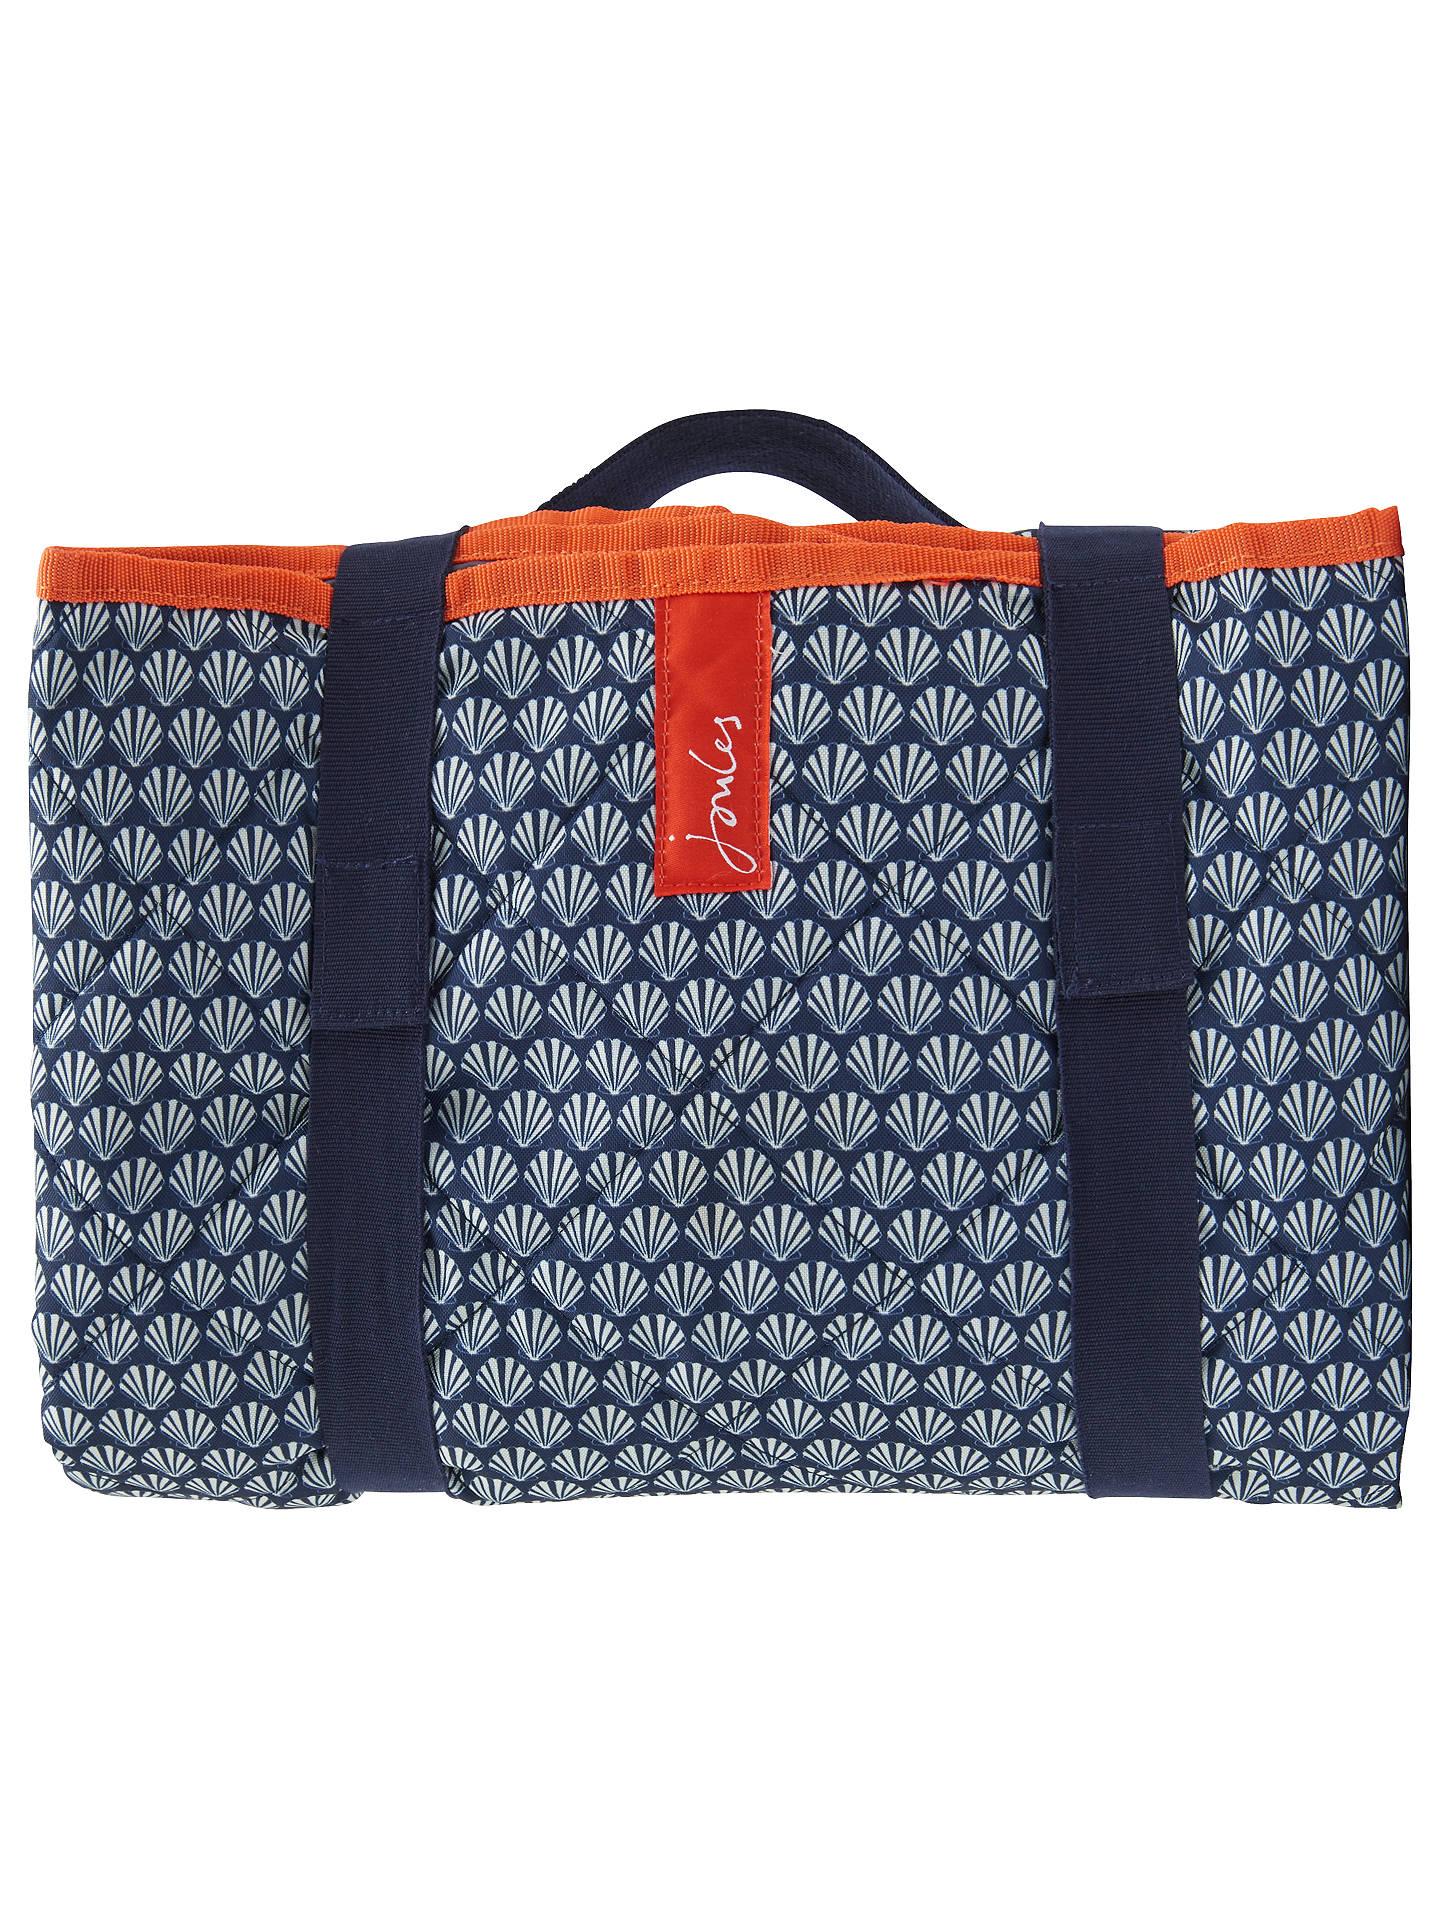 Joules Navy Ss Picnic Rug Online At Johnlewis Com